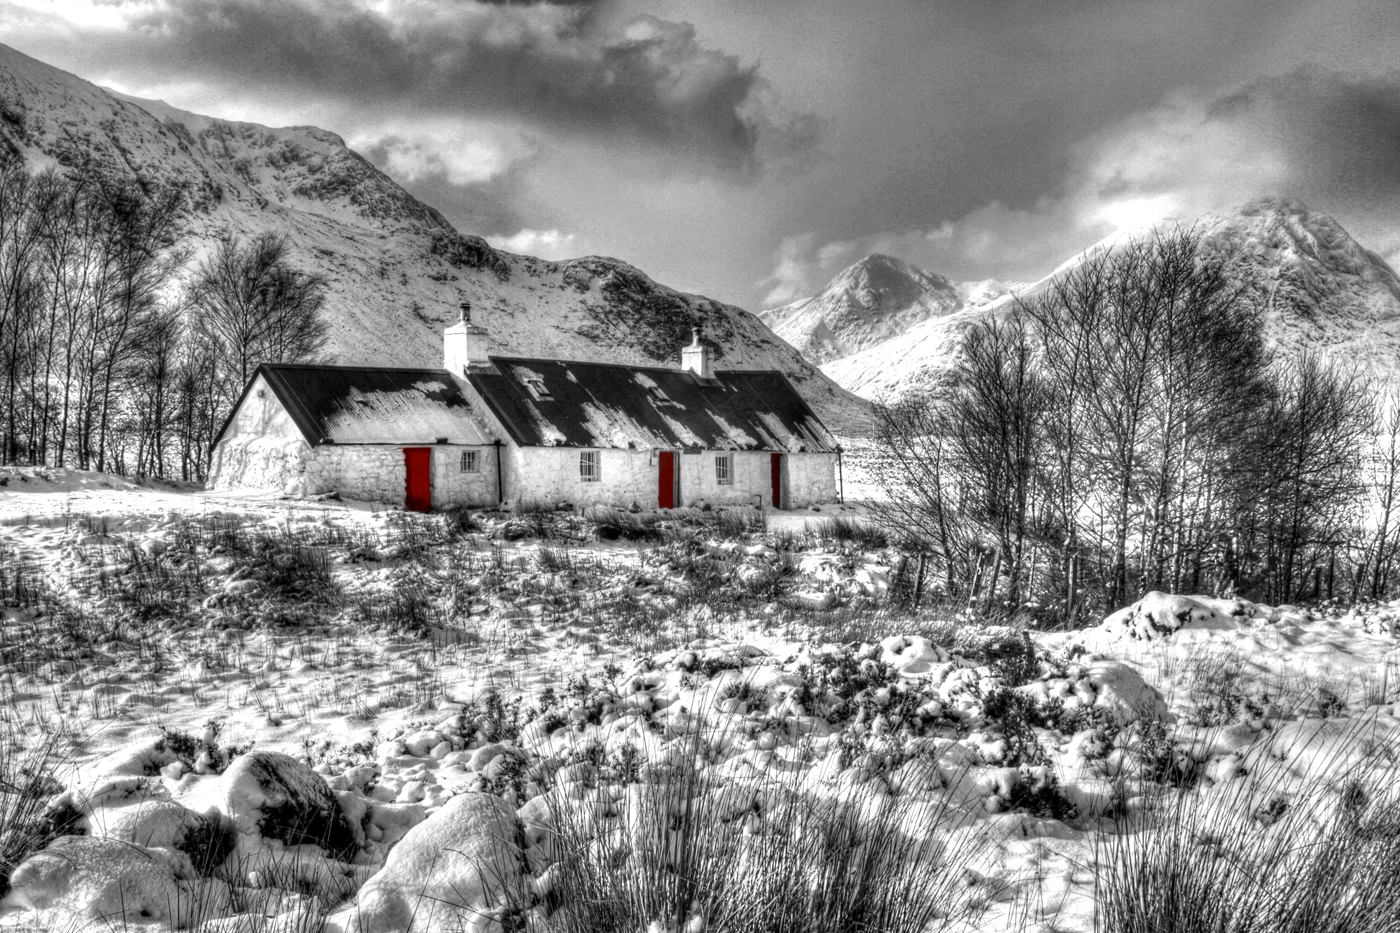 Projected Image - 2nd Place: Black Rock Cottage by Anne Thompson